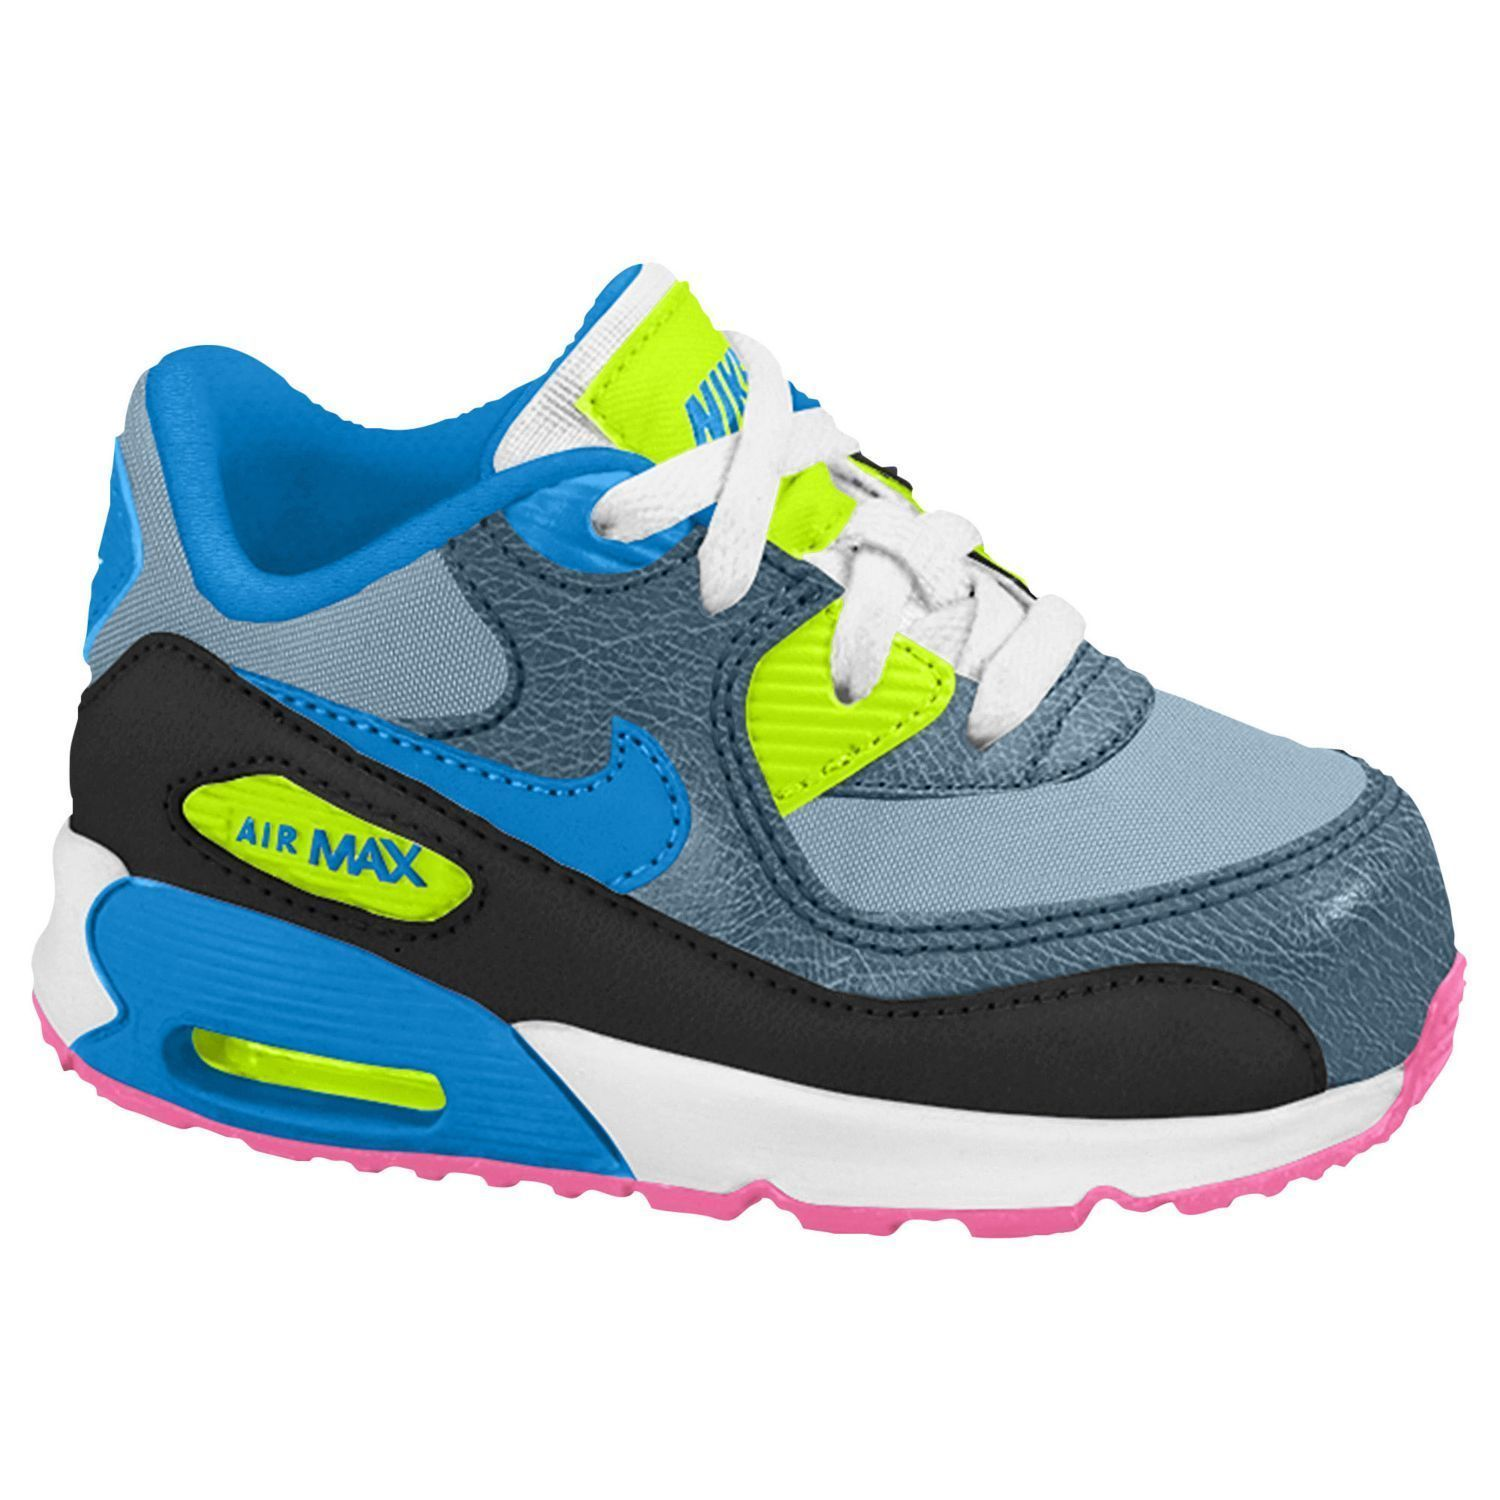 Baby boys nike air max 90 running shoes toddler size 4 nib